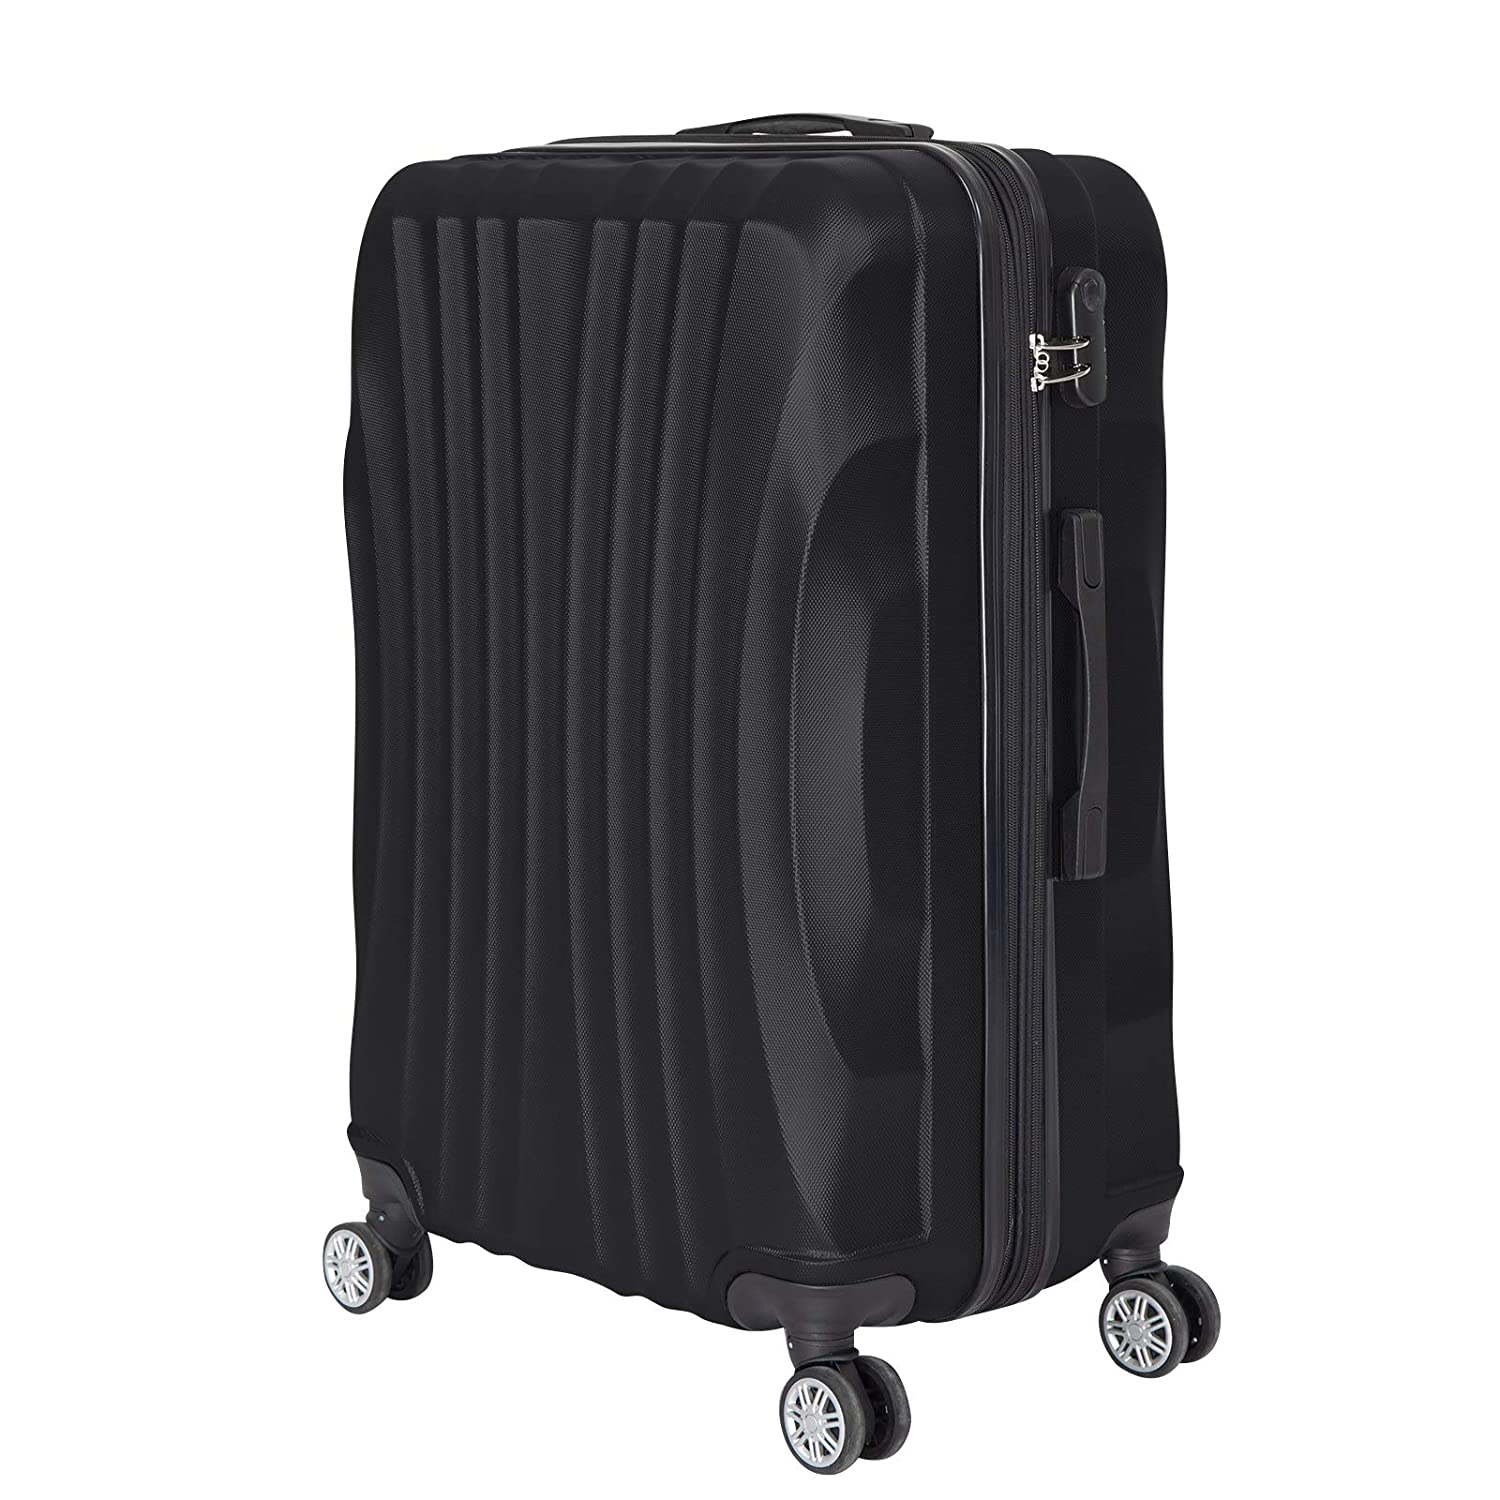 2984029e9 Elightry 1213 ABS Hard Shell Luggage Case Suitcase Superlight Travel Case  with 360 Rotating Wheels Volume ...